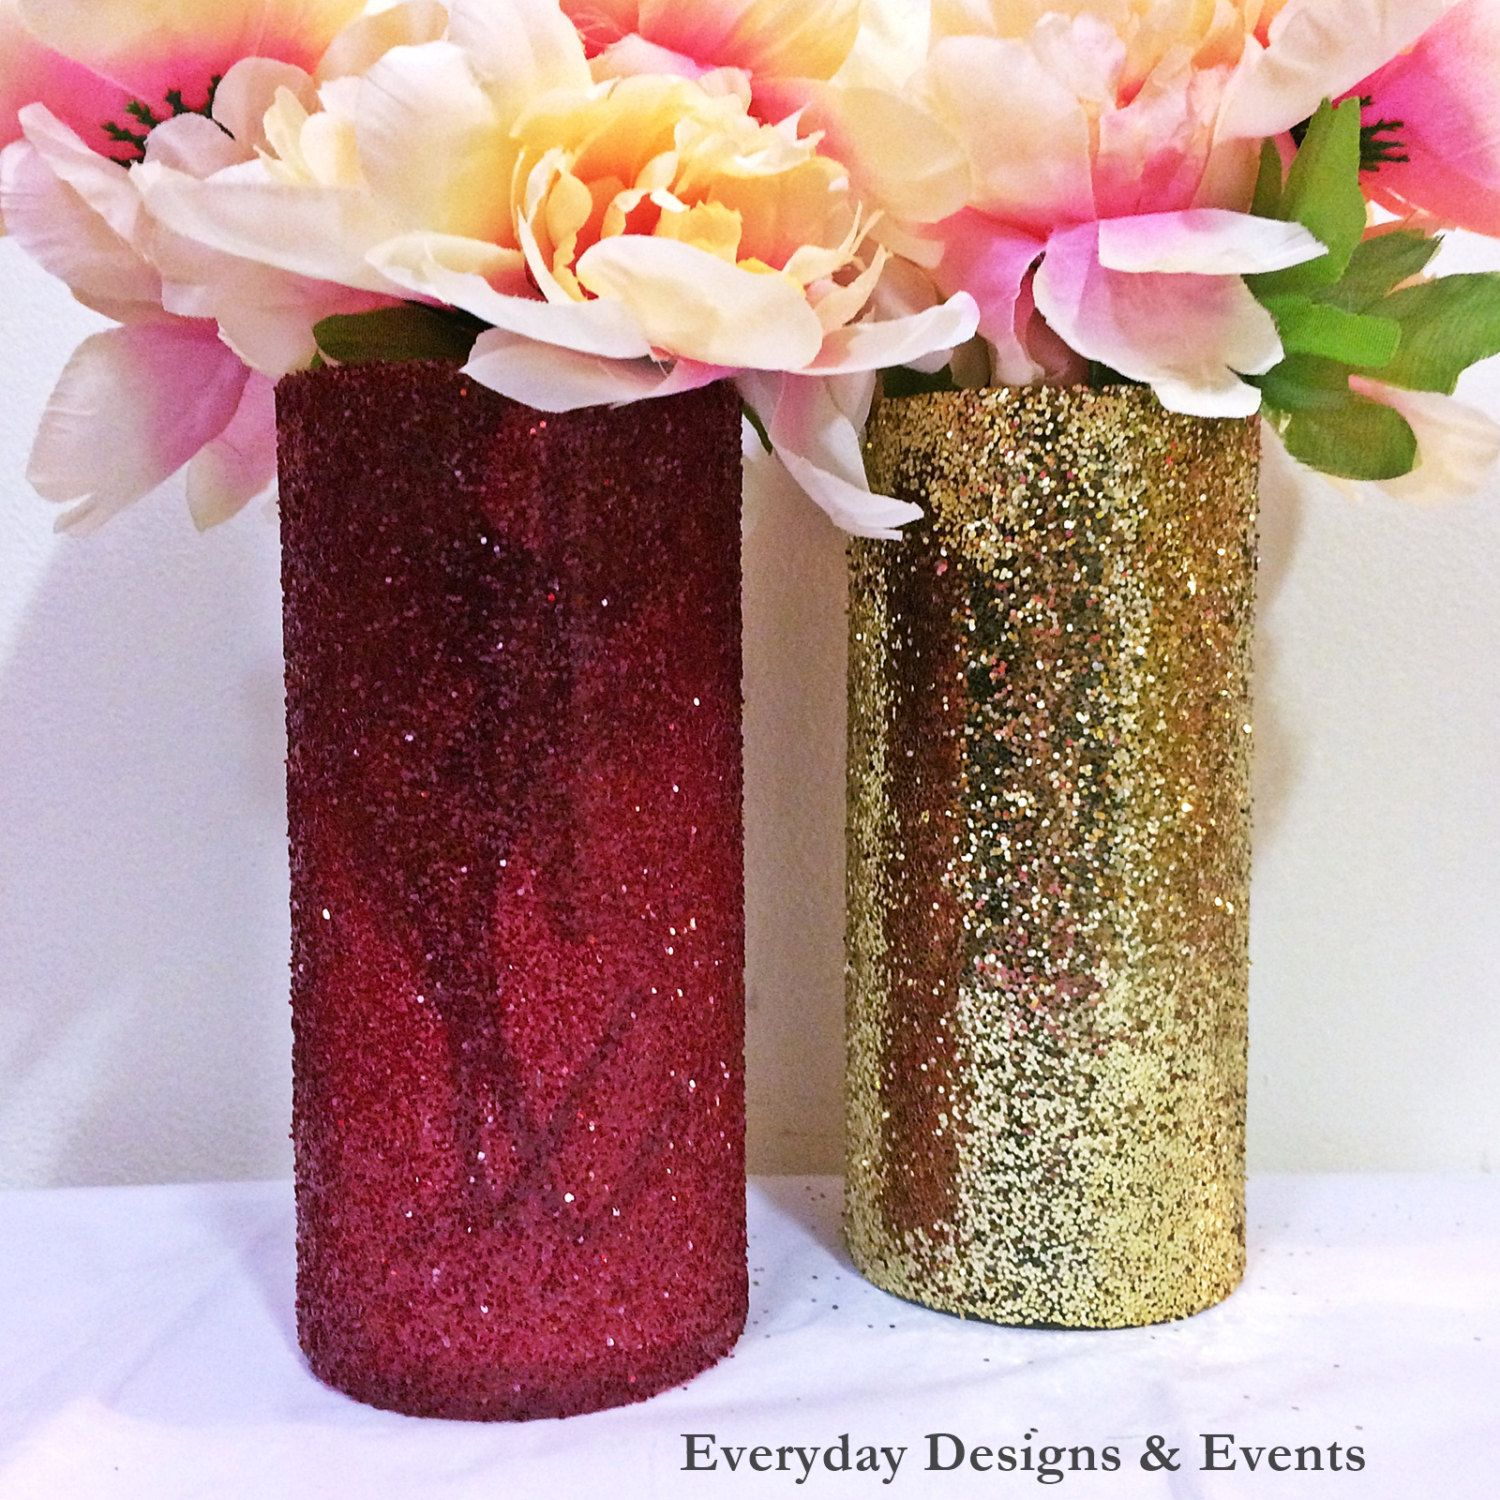 Maroon and gold vases wine glass vases red wine glitter vases maroon and gold vases wine glass vases red wine glitter vases wedding centerpieces reviewsmspy